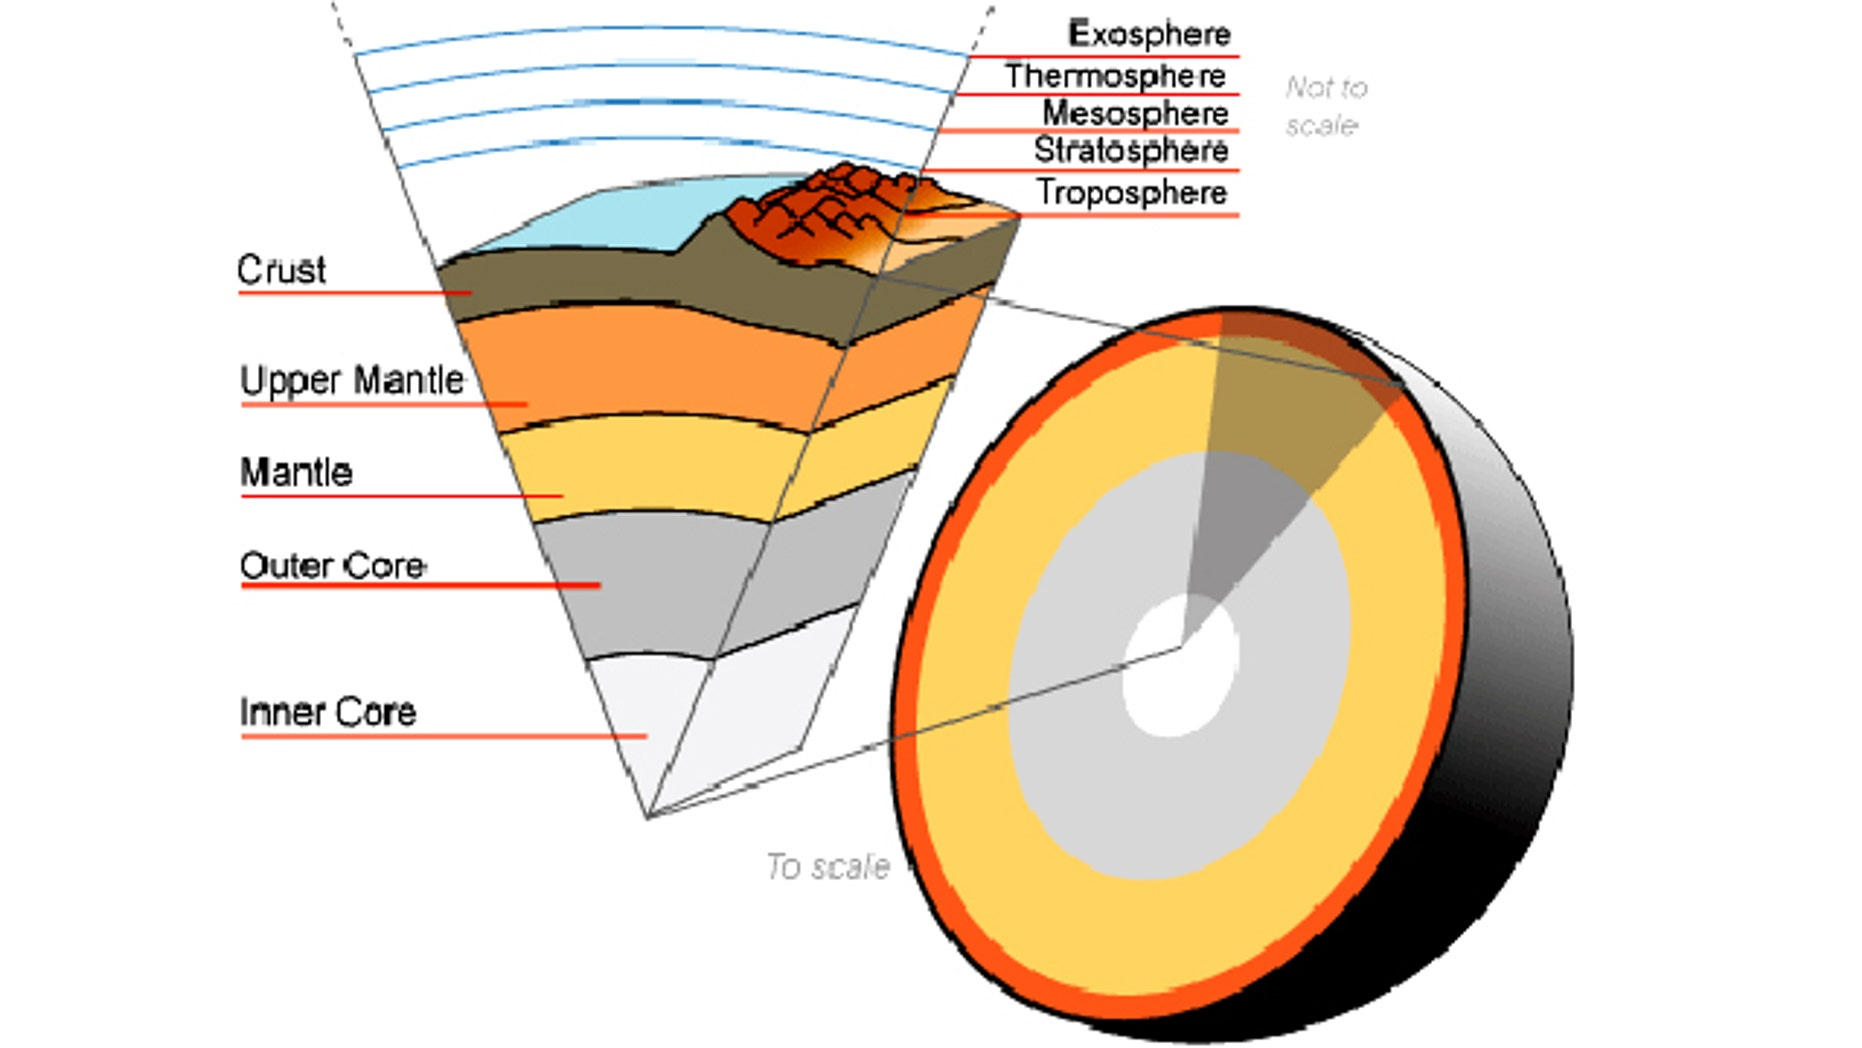 A cutaway illustration showing the Earth's atmosphere and various inner layers.